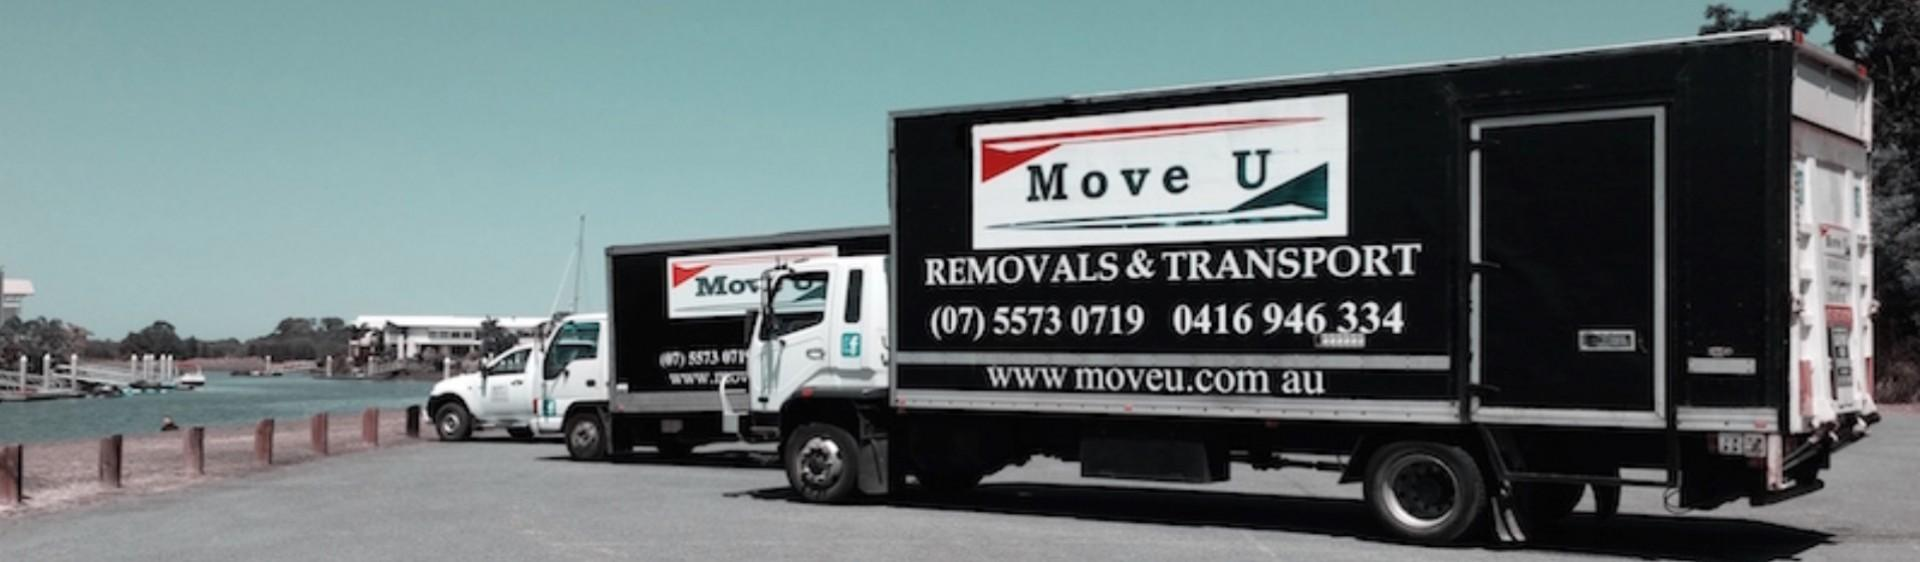 Move U Removals